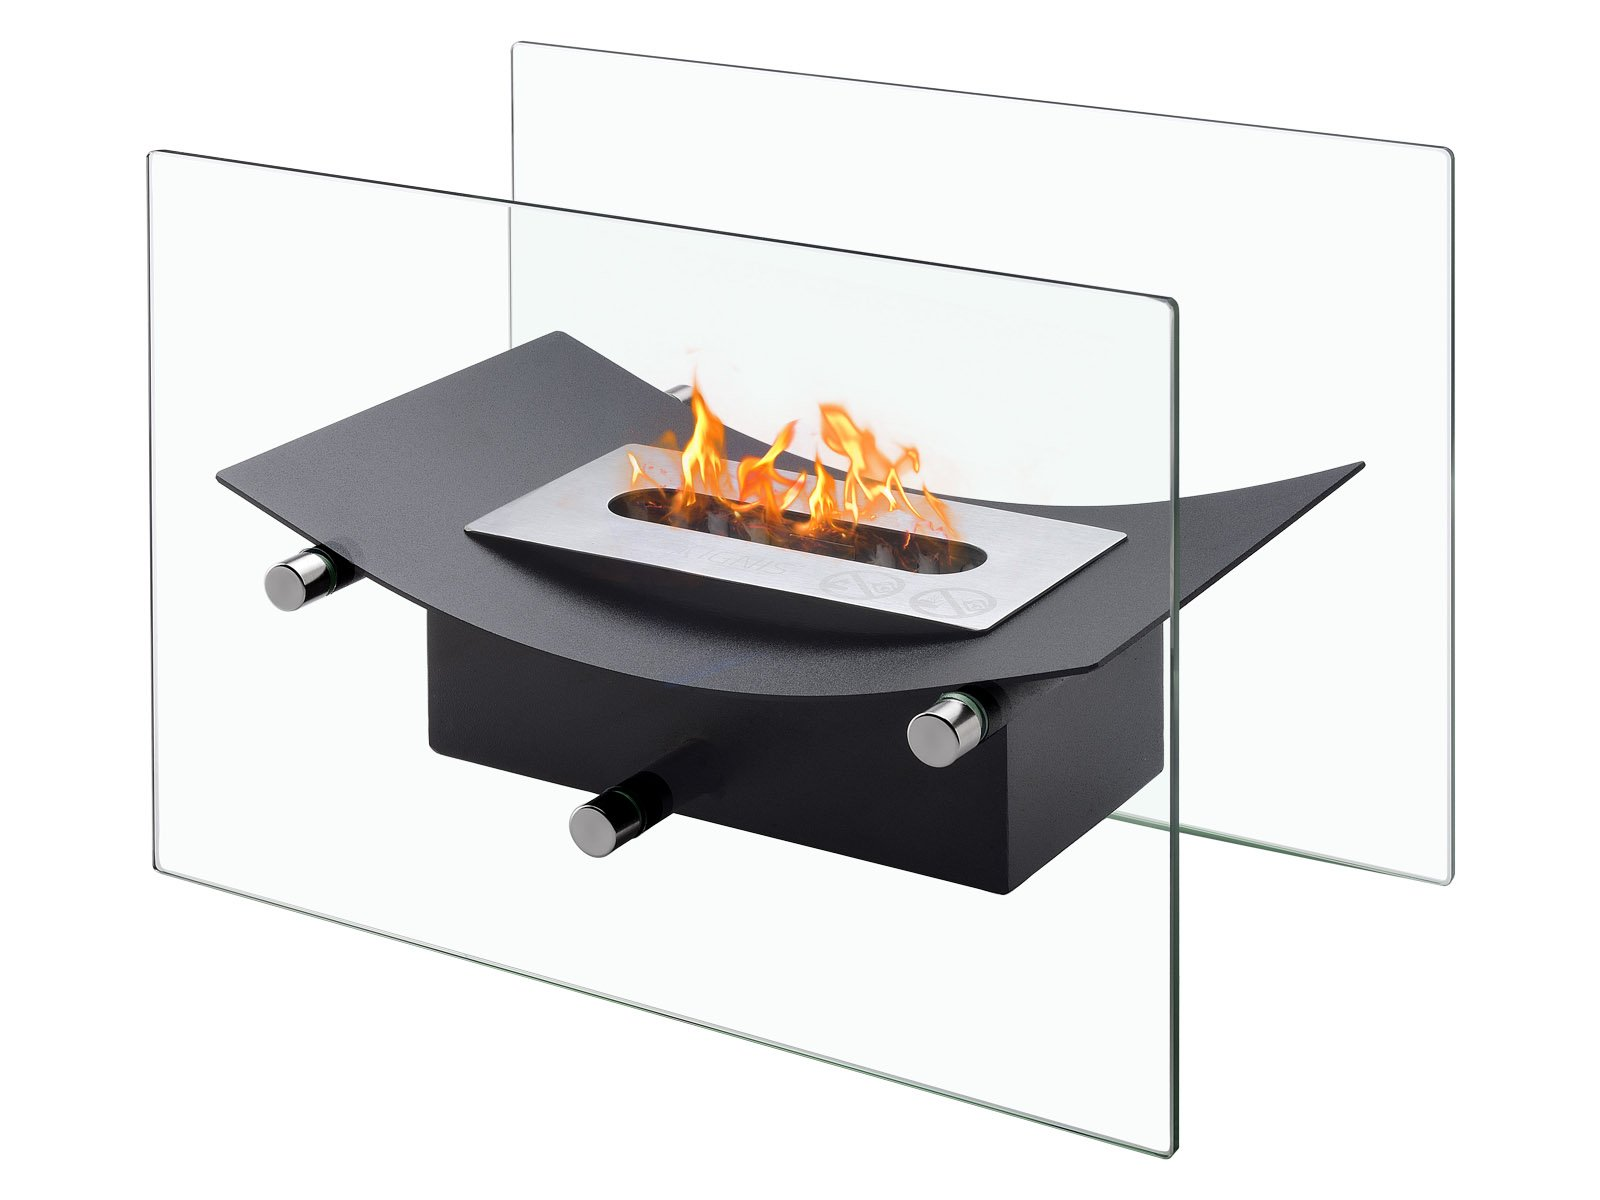 Ignis Verona - Ventless Tabletop Bio Ethanol Fireplace, Portable Fireplace (Black) by Ignis